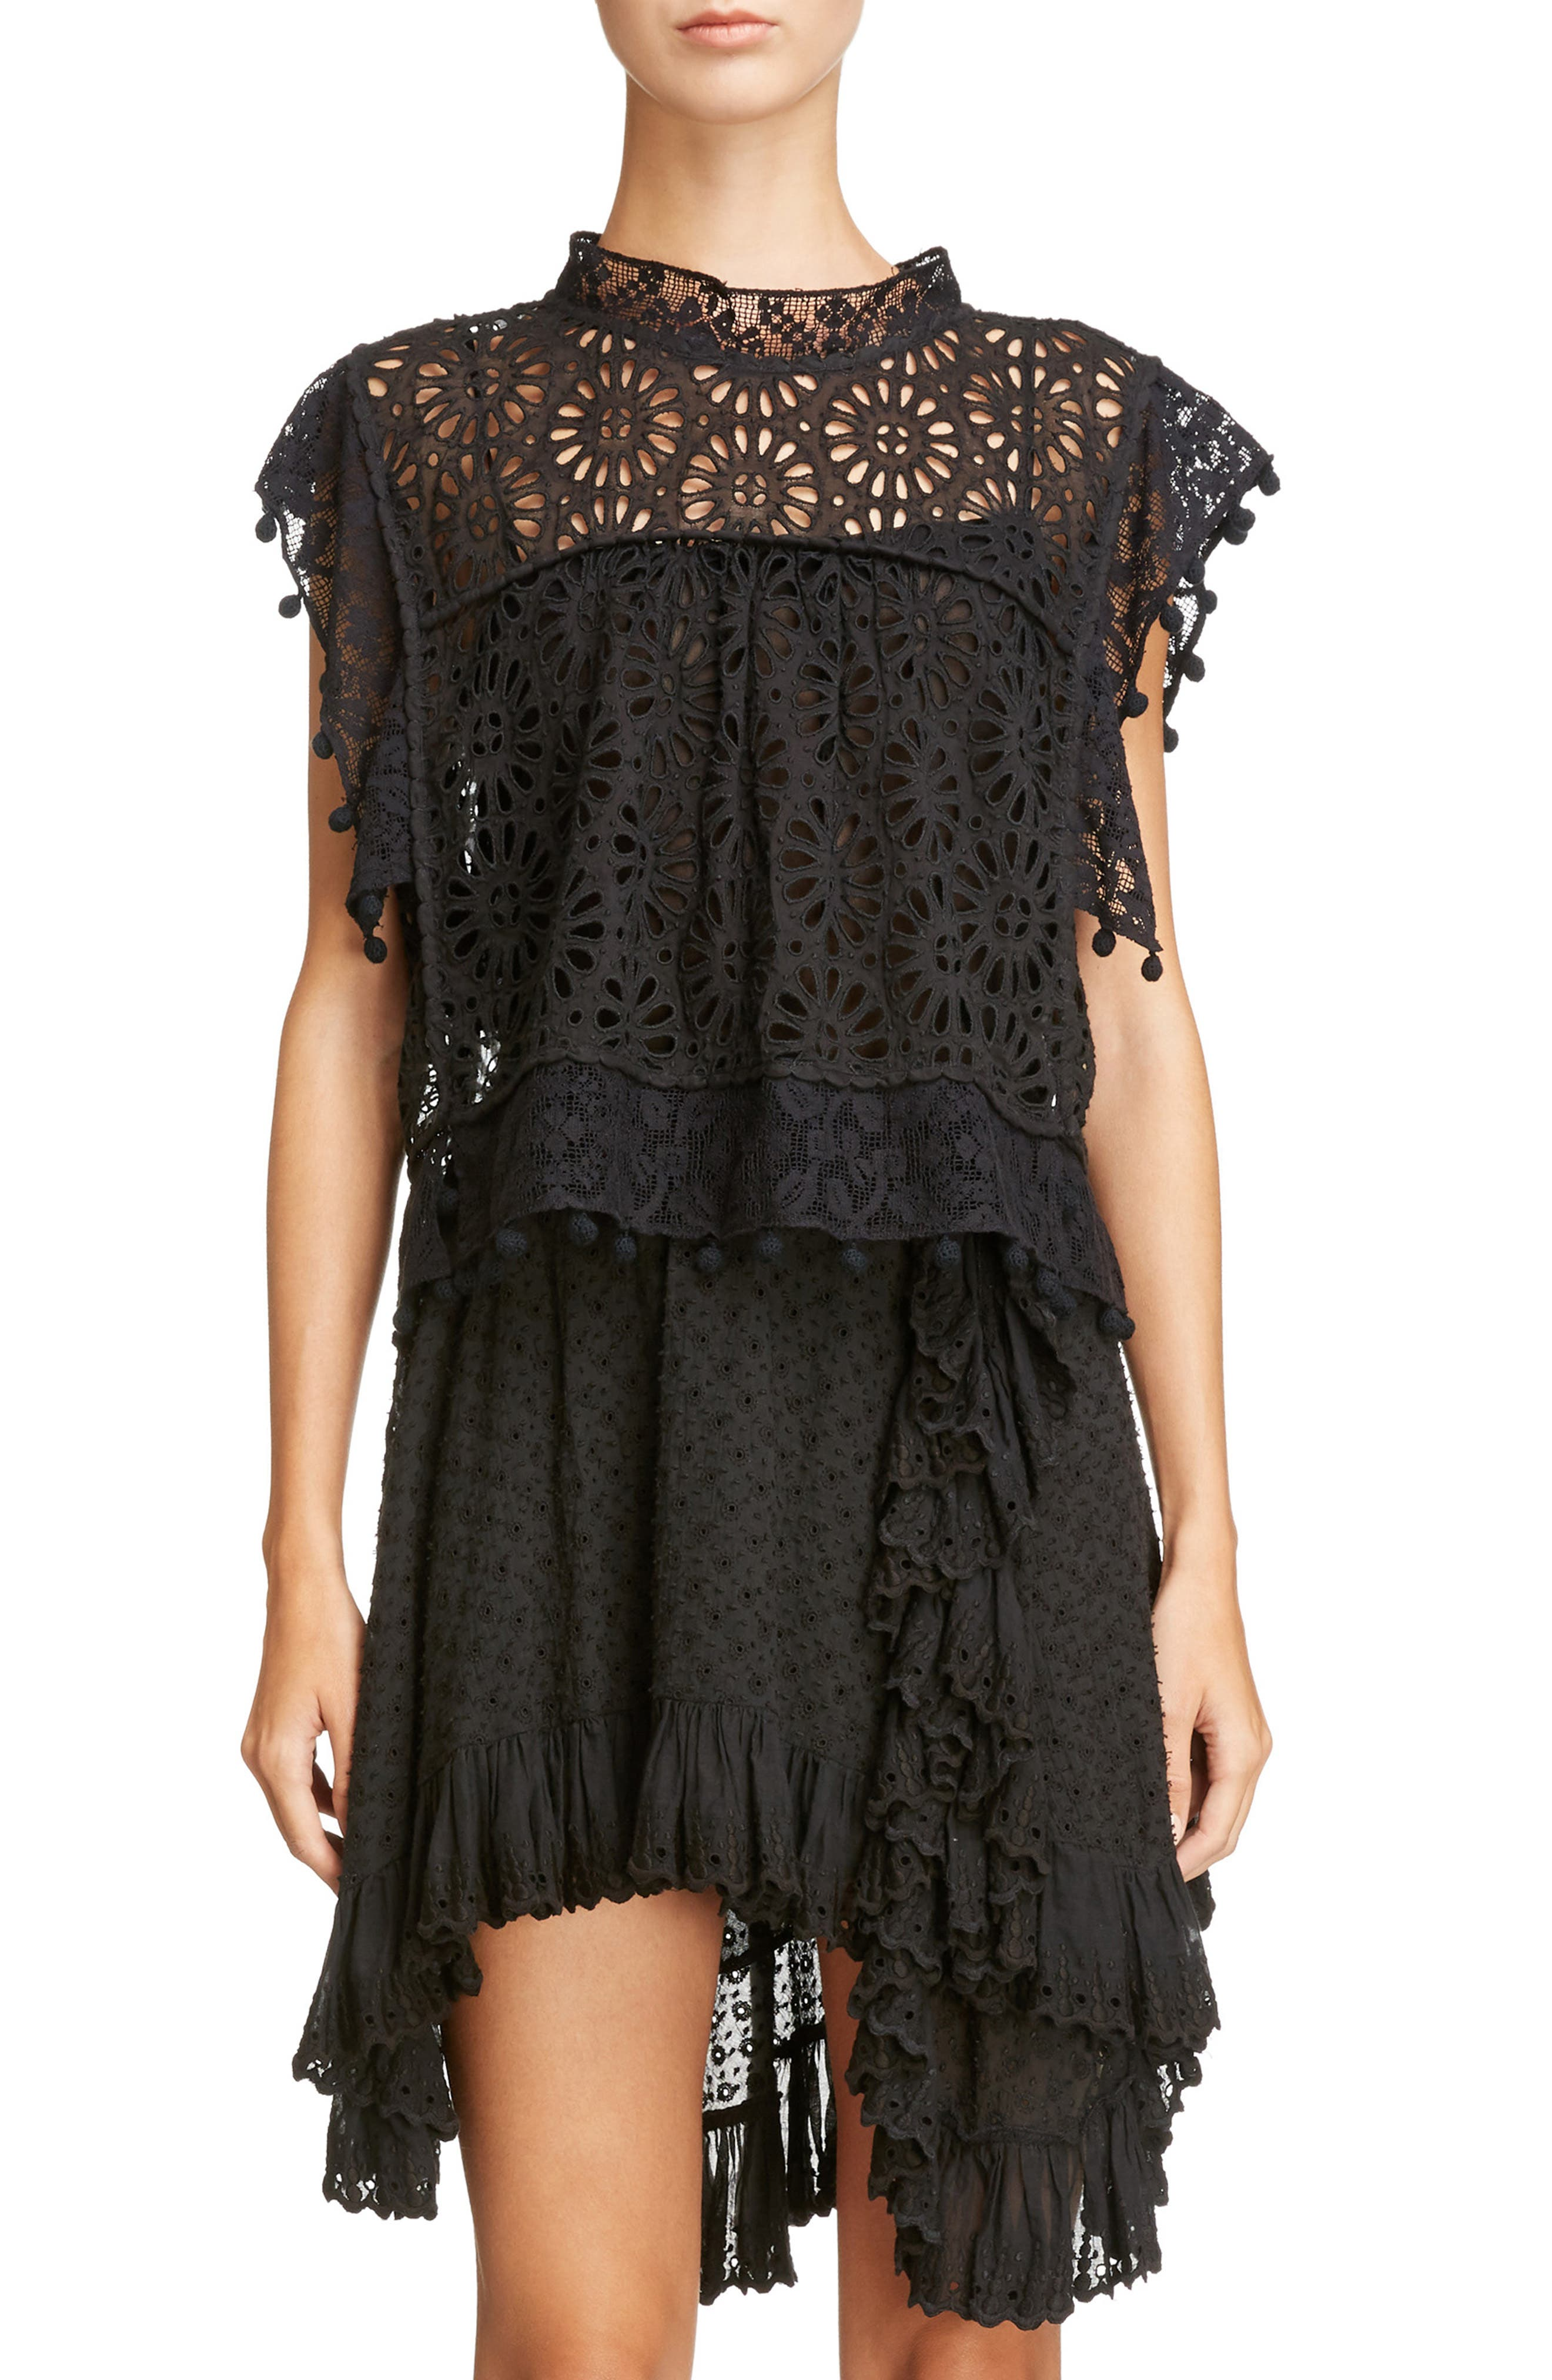 Isabel Marant Pompom Trim Broderie Anglaise Top